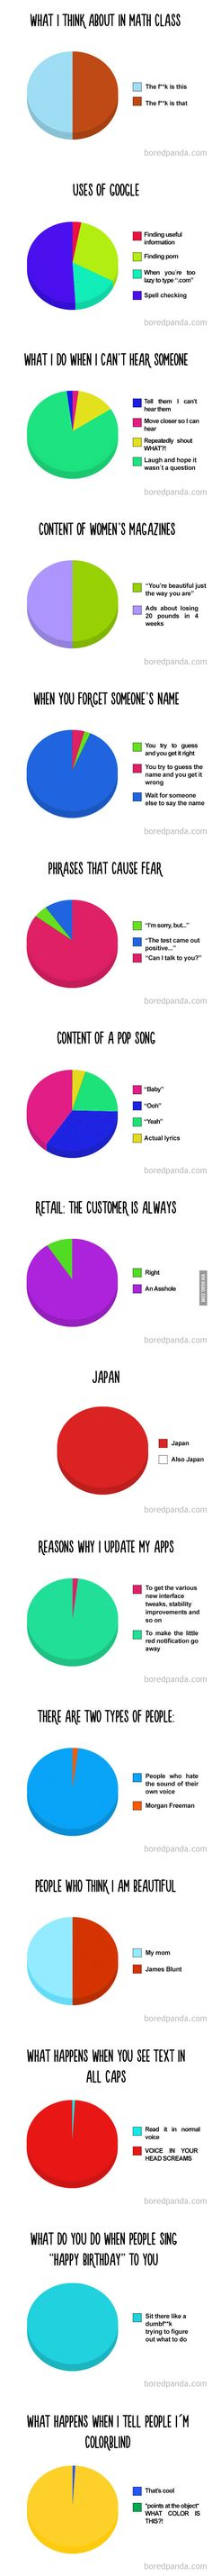 LOL! These pie charts are so damn true! - 9GAG